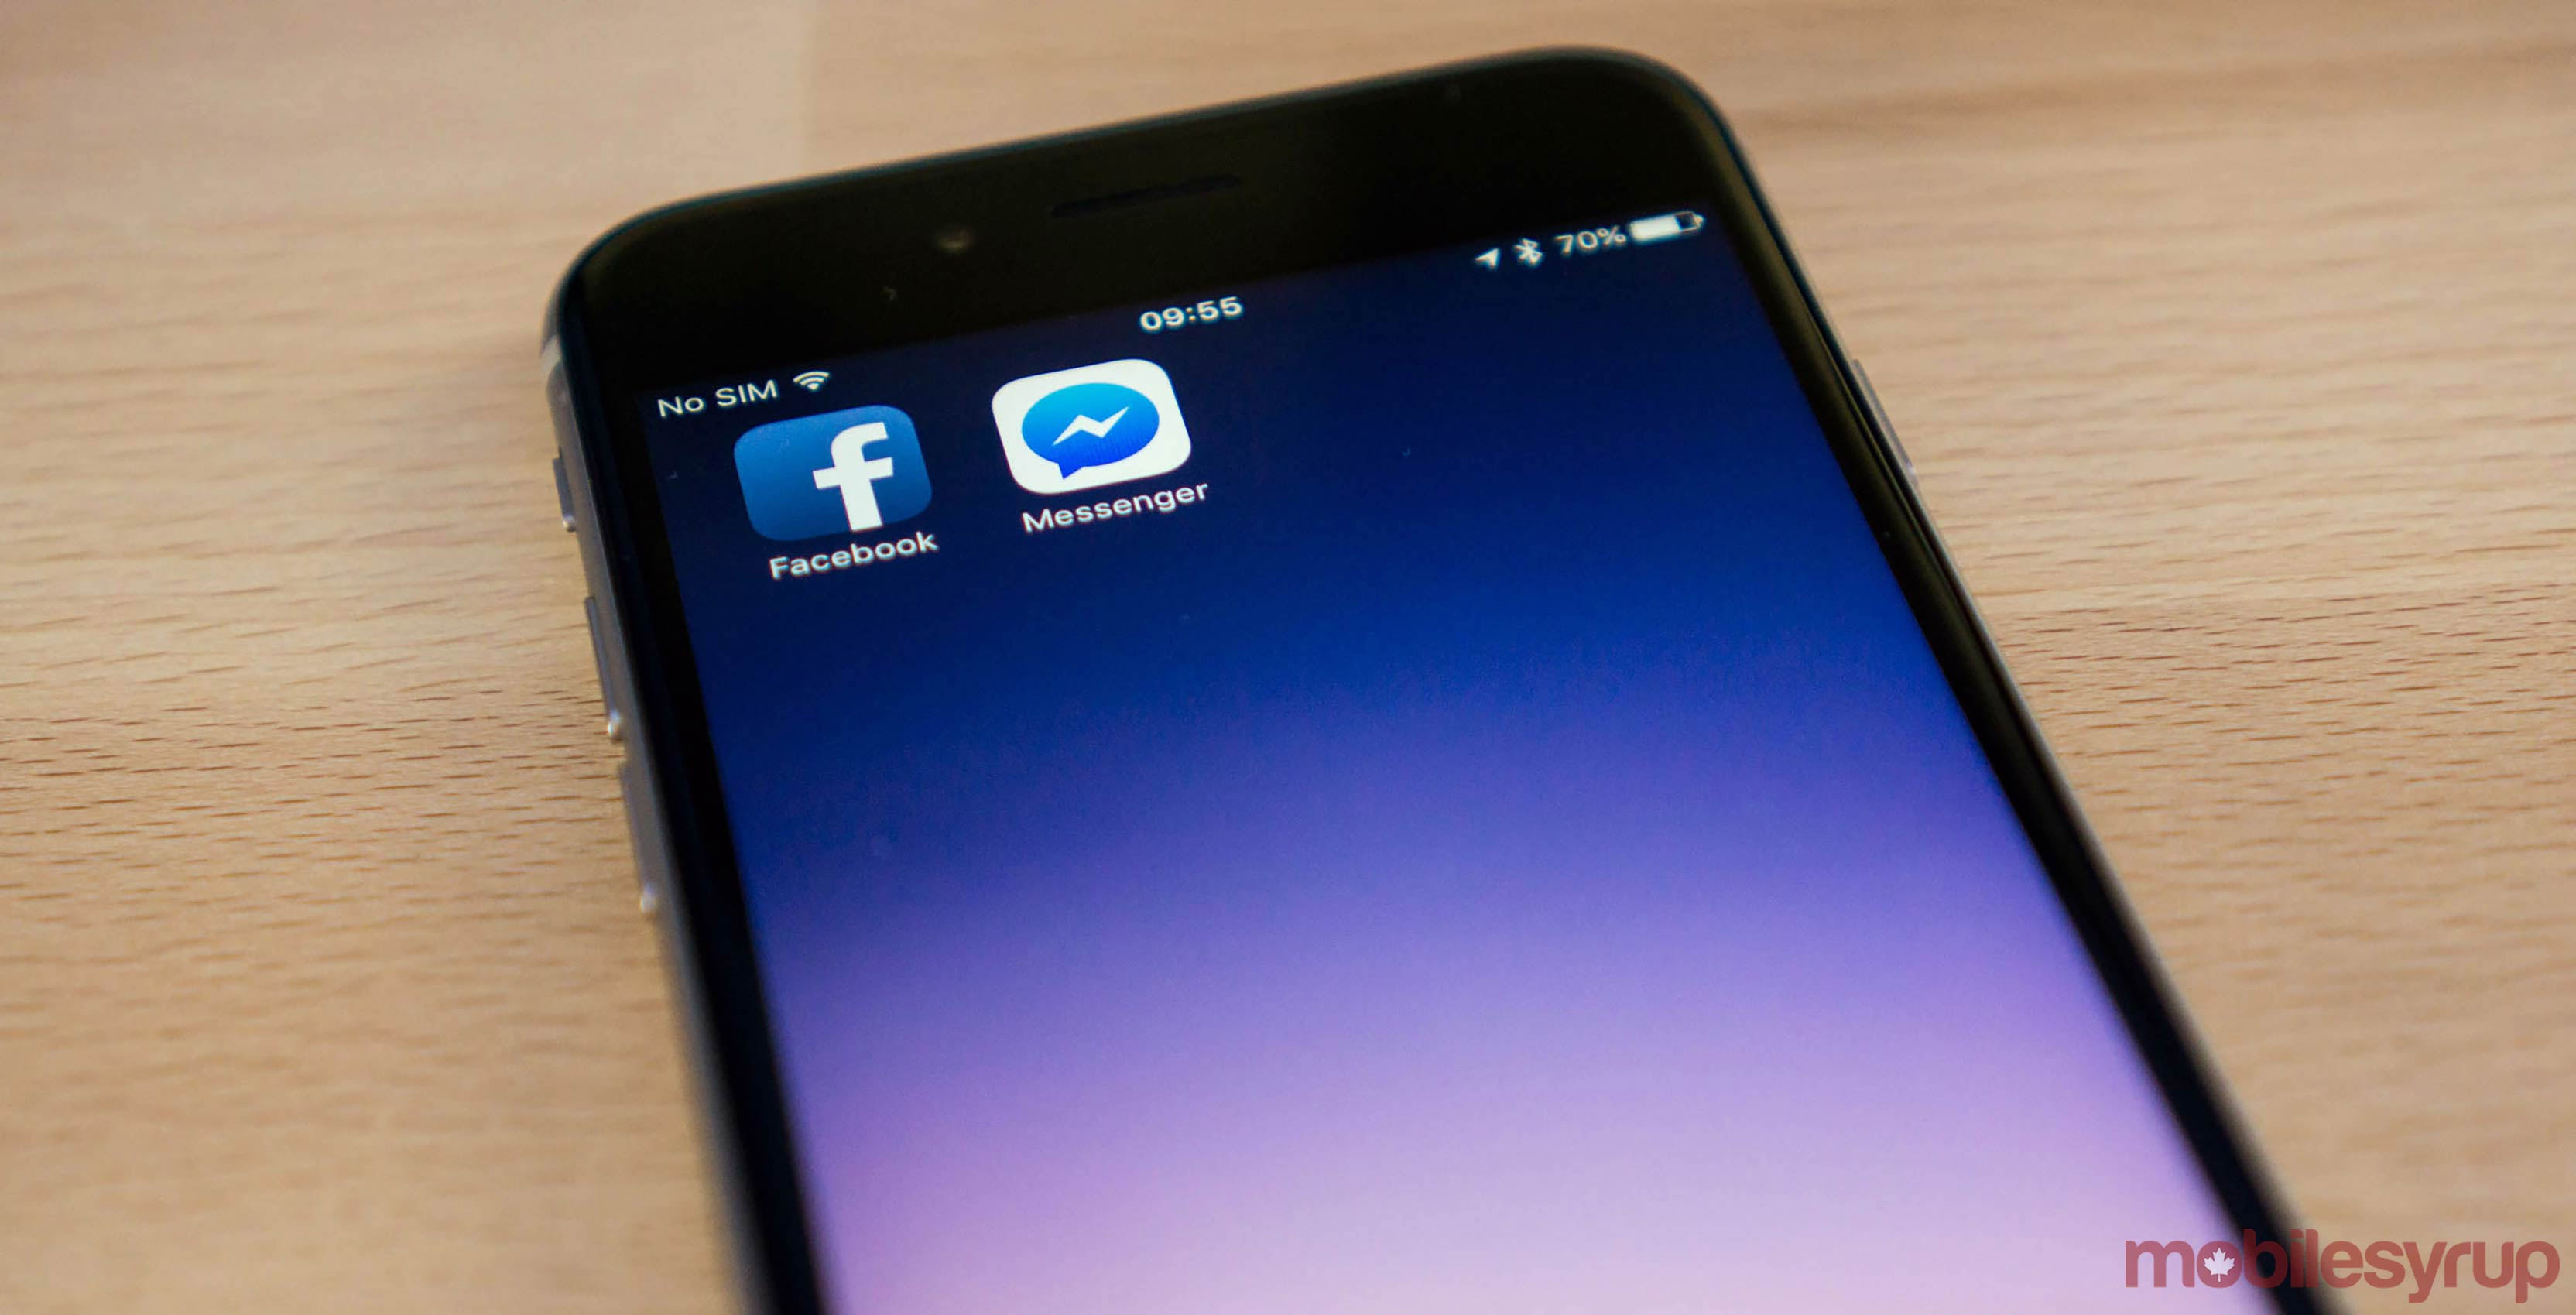 Facebook Messenger app on phone